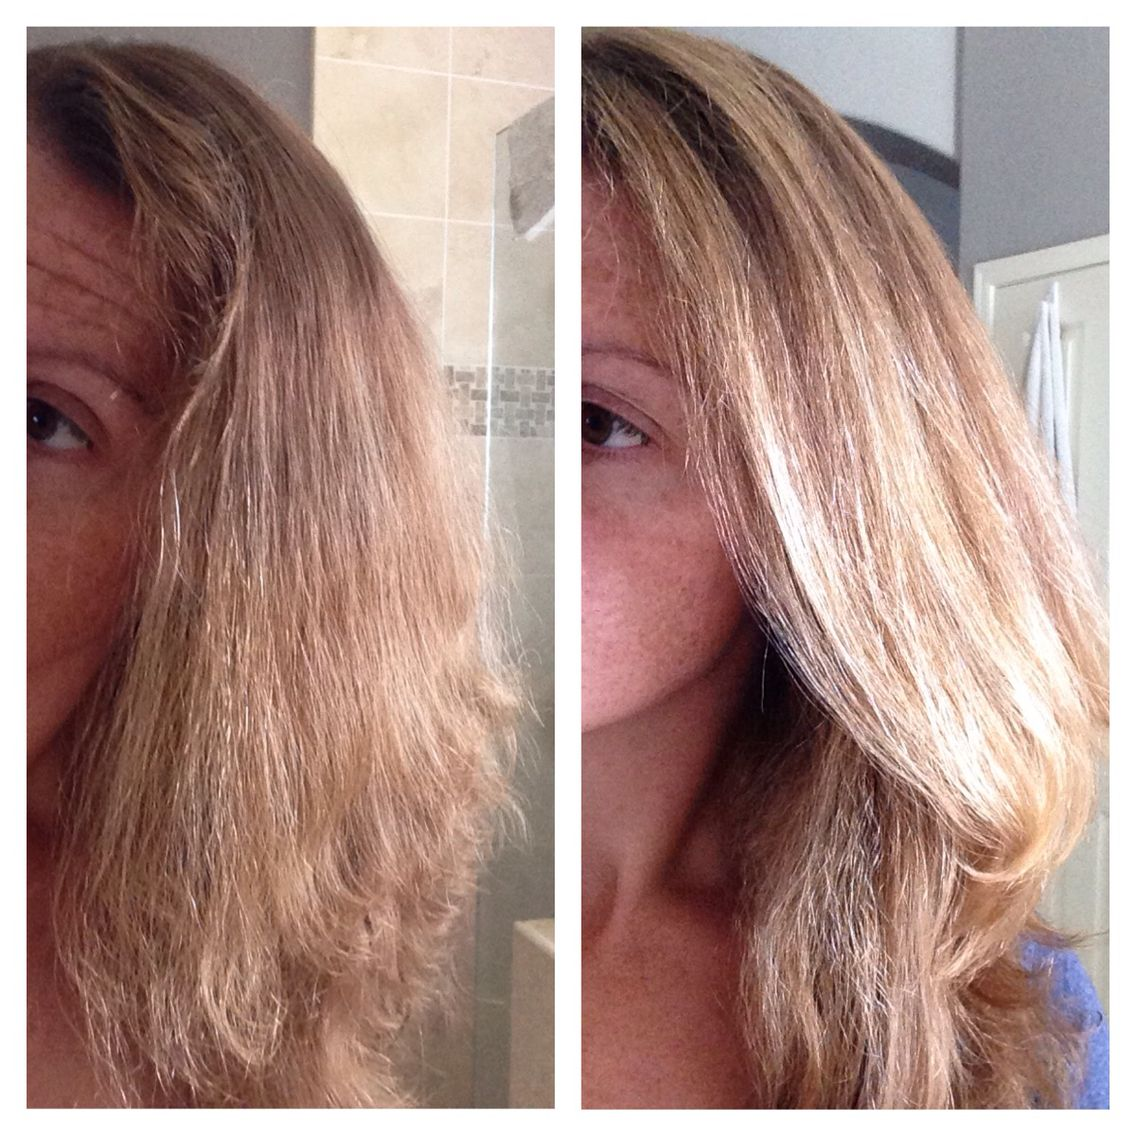 Clairol Shimmer Lights shampoo before and after.